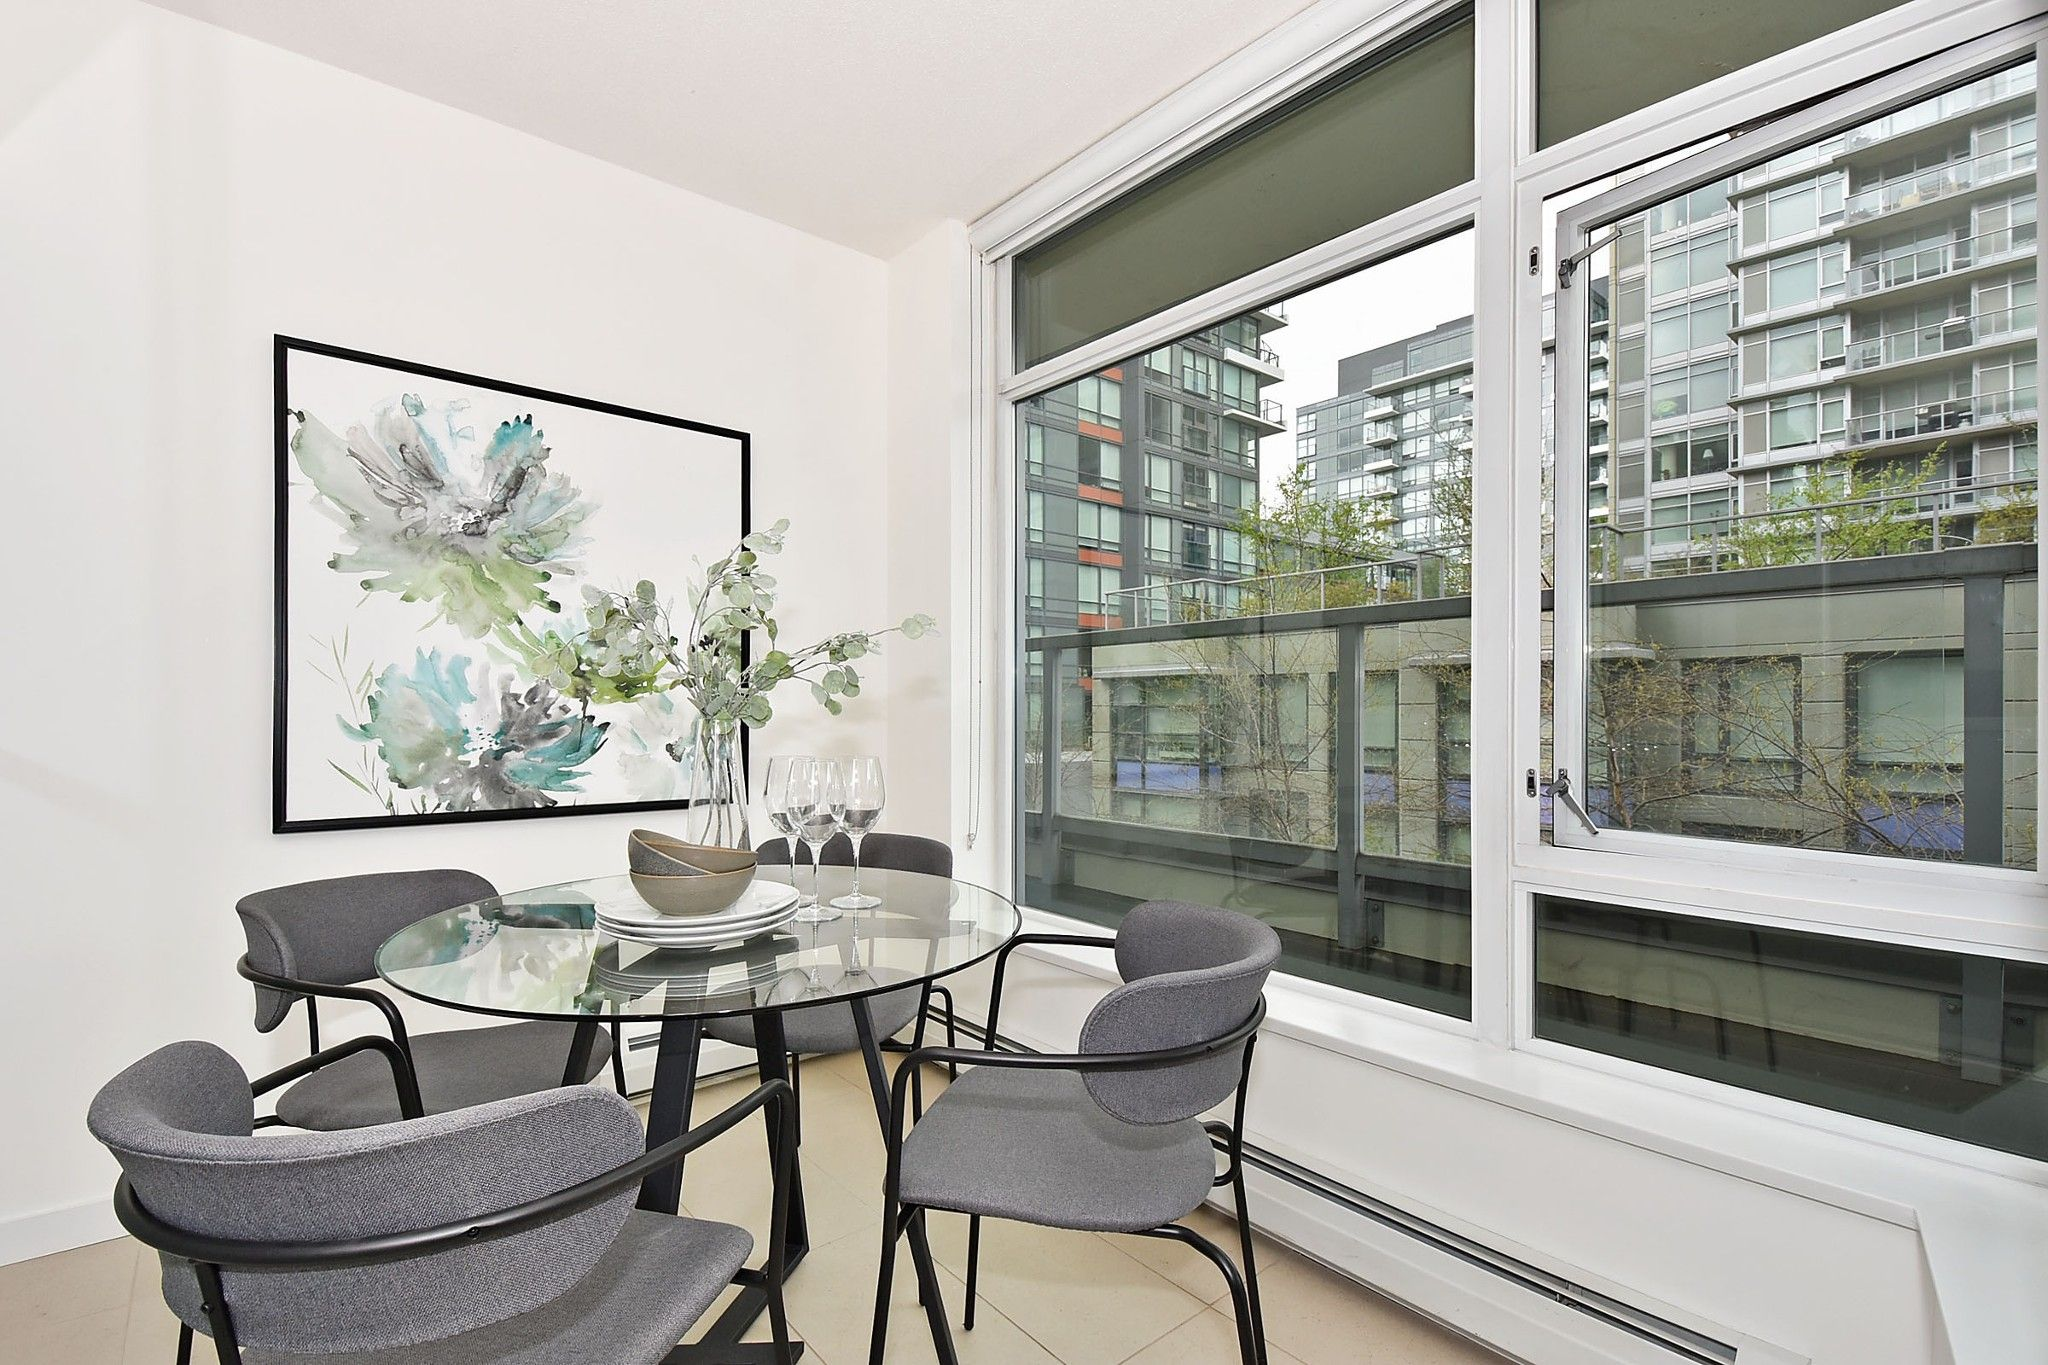 """Photo 10: Photos: 306 138 W 1ST Avenue in Vancouver: False Creek Condo for sale in """"WALL CENTRE FALSE CREEK"""" (Vancouver West)  : MLS®# R2360592"""